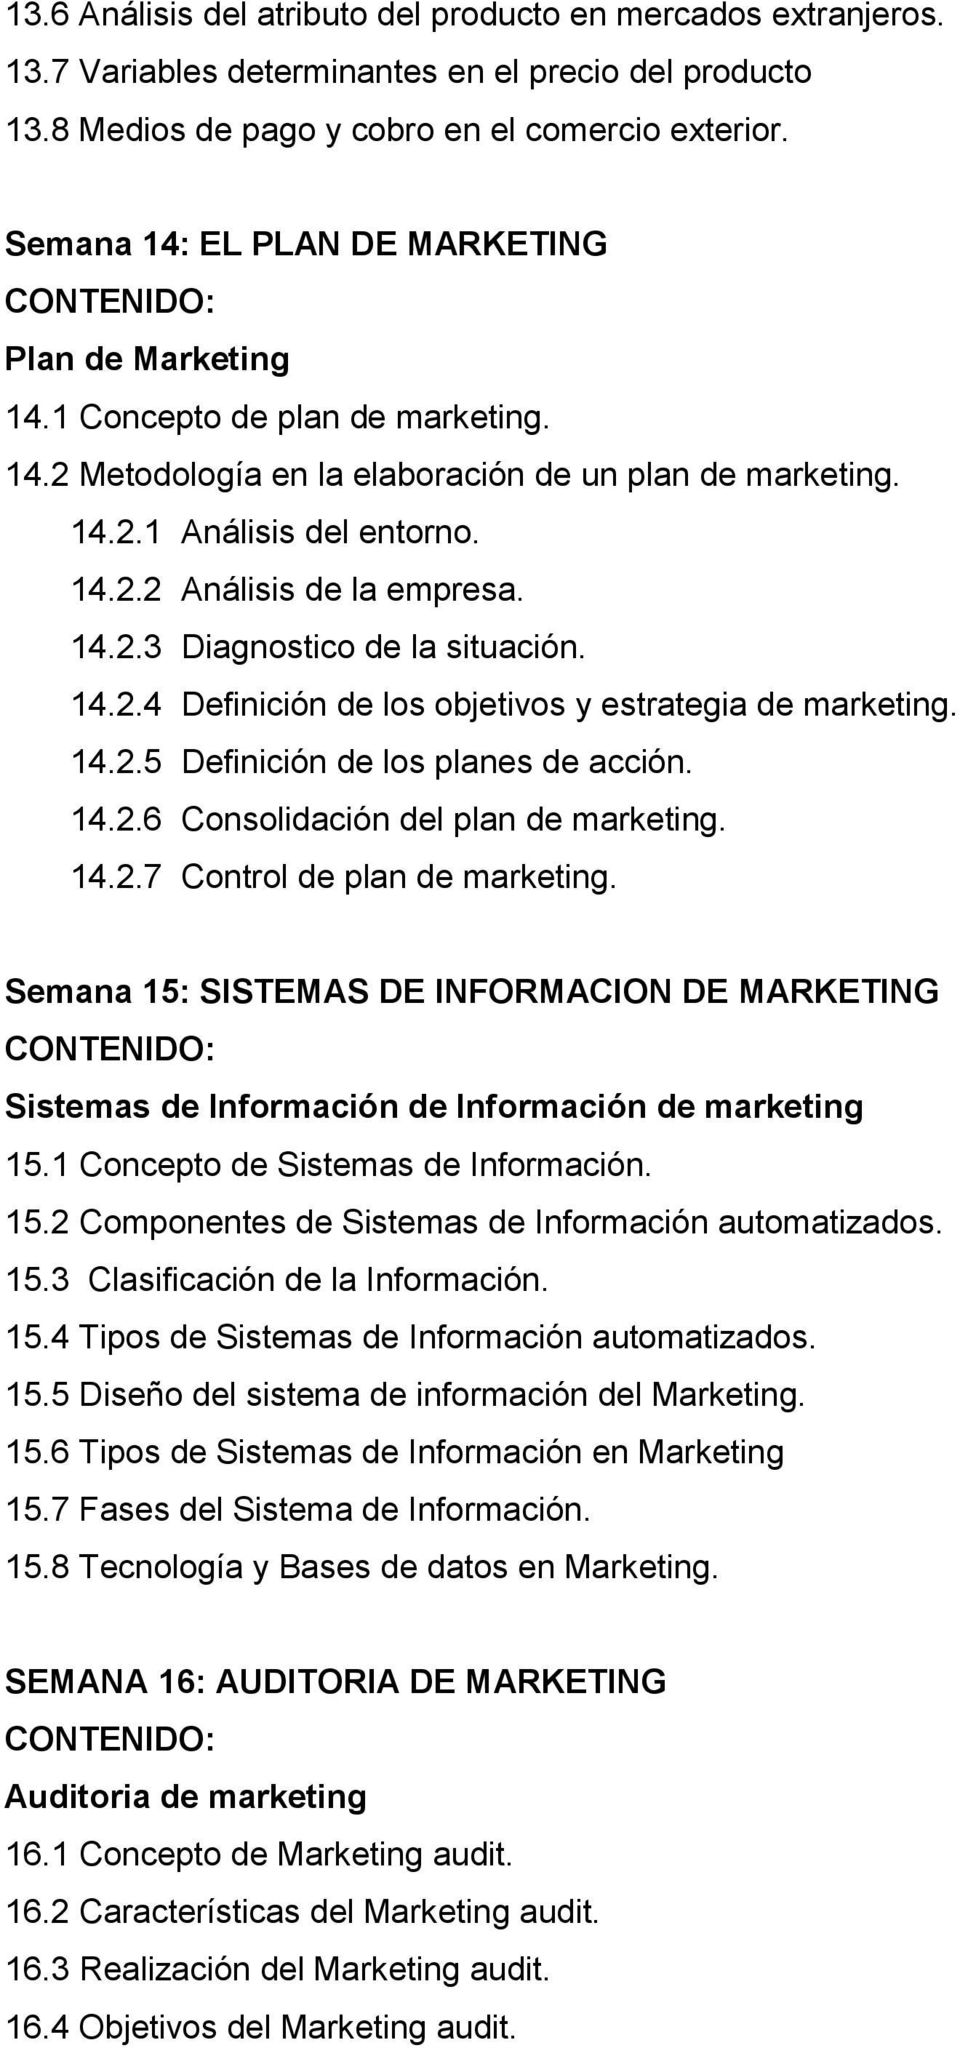 14.2.3 Diagnostico de la situación. 14.2.4 Definición de los objetivos y estrategia de marketing. 14.2.5 Definición de los planes de acción. 14.2.6 Consolidación del plan de marketing. 14.2.7 Control de plan de marketing.